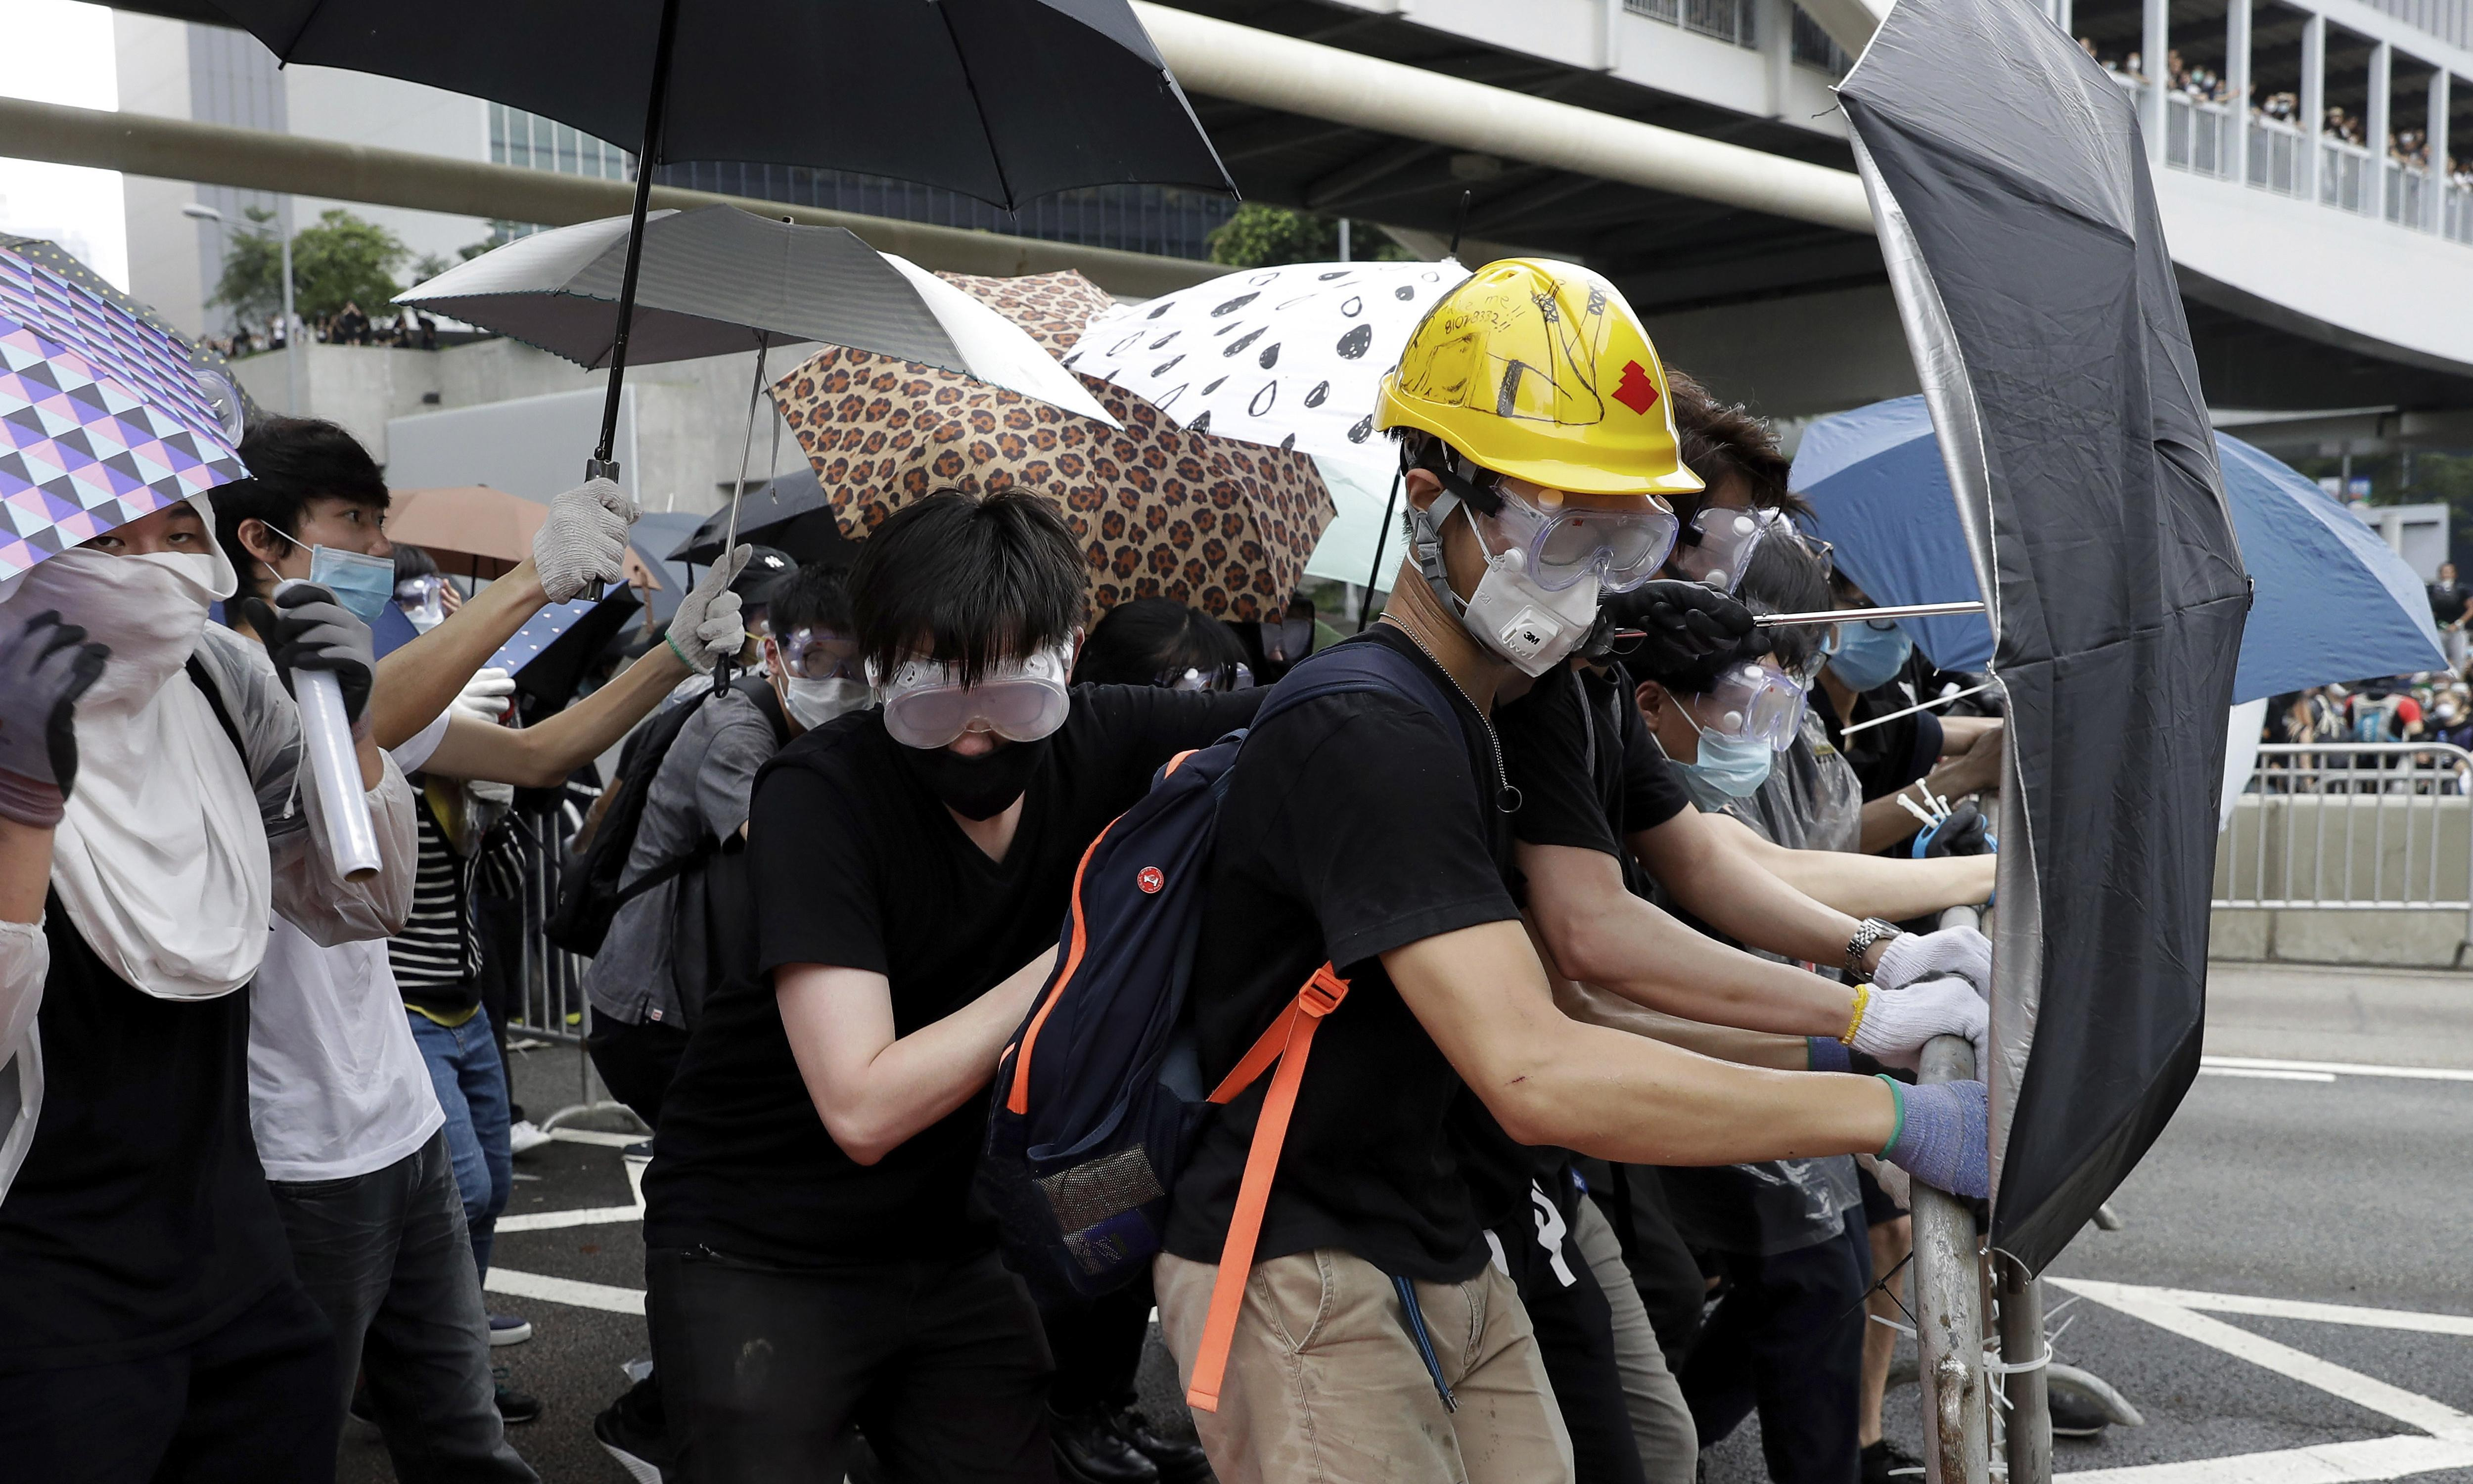 Mass street protests are an expression of Hong Kong's identity